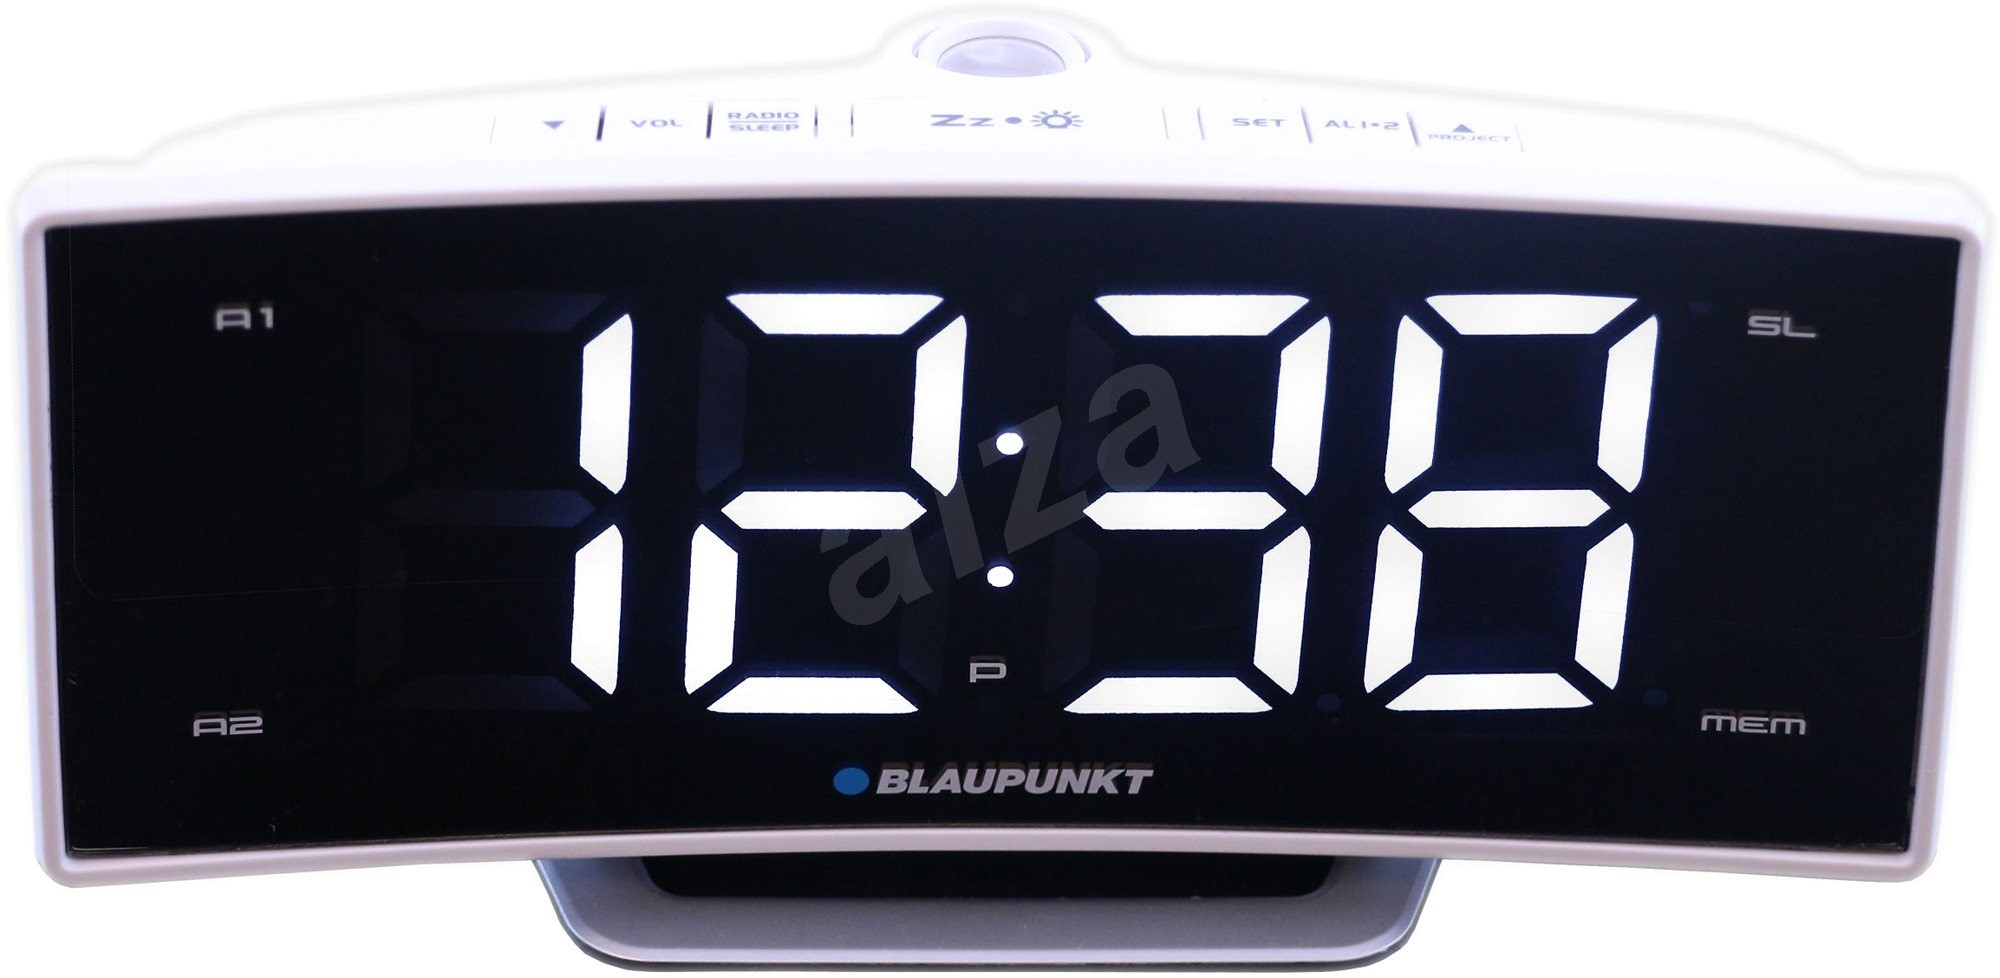 blaupunkt crp7wh radio alarm clock. Black Bedroom Furniture Sets. Home Design Ideas